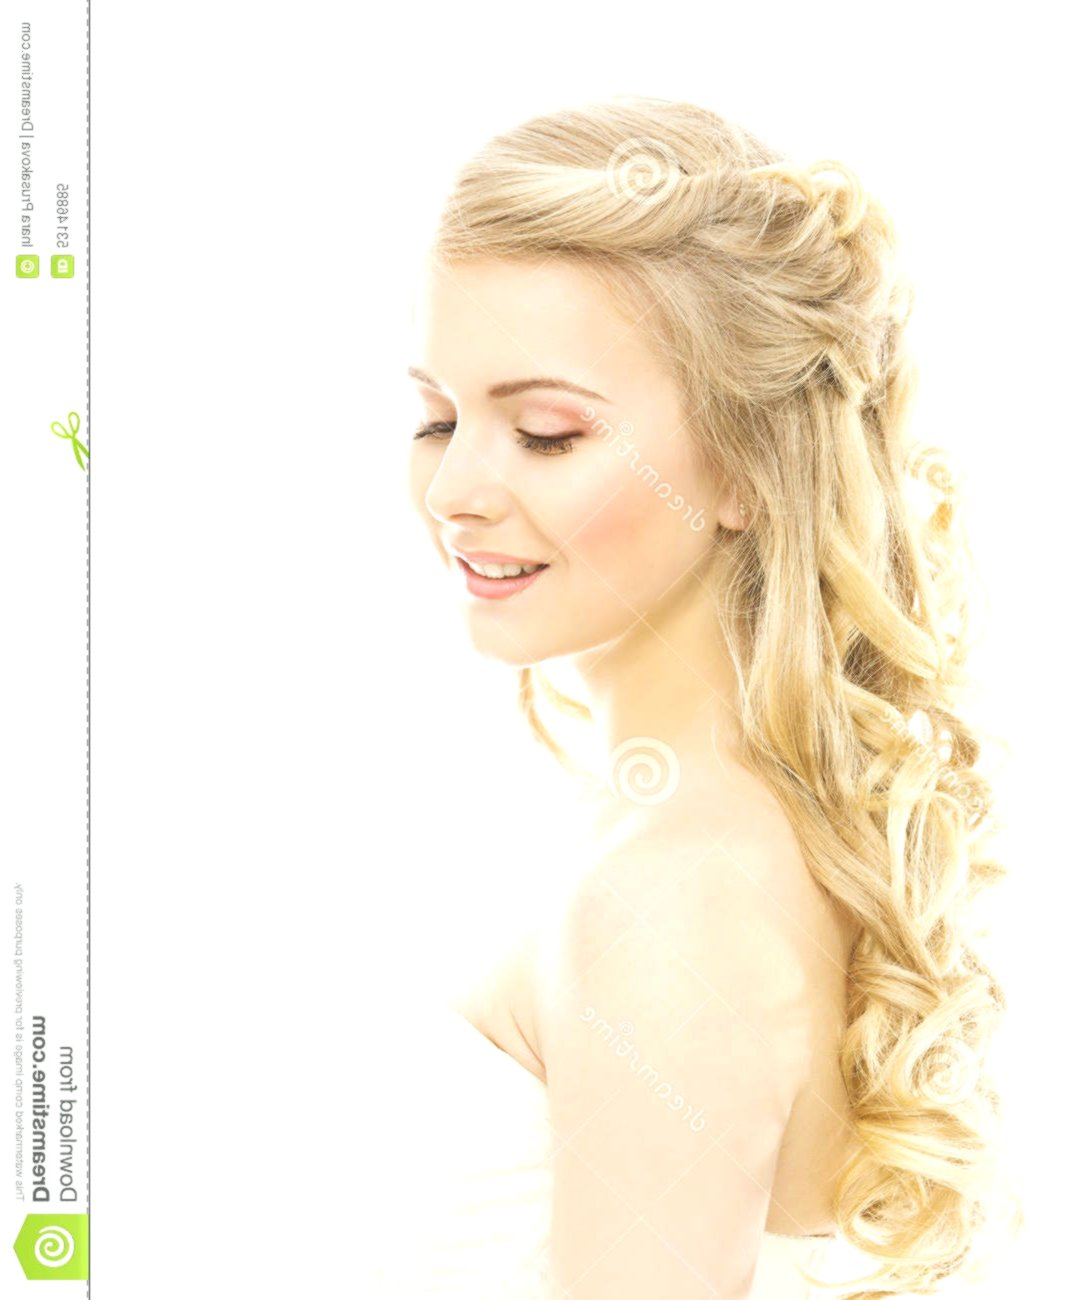 best of curly hair hairstyles background - Inspirational curly hair hairstyles architecture